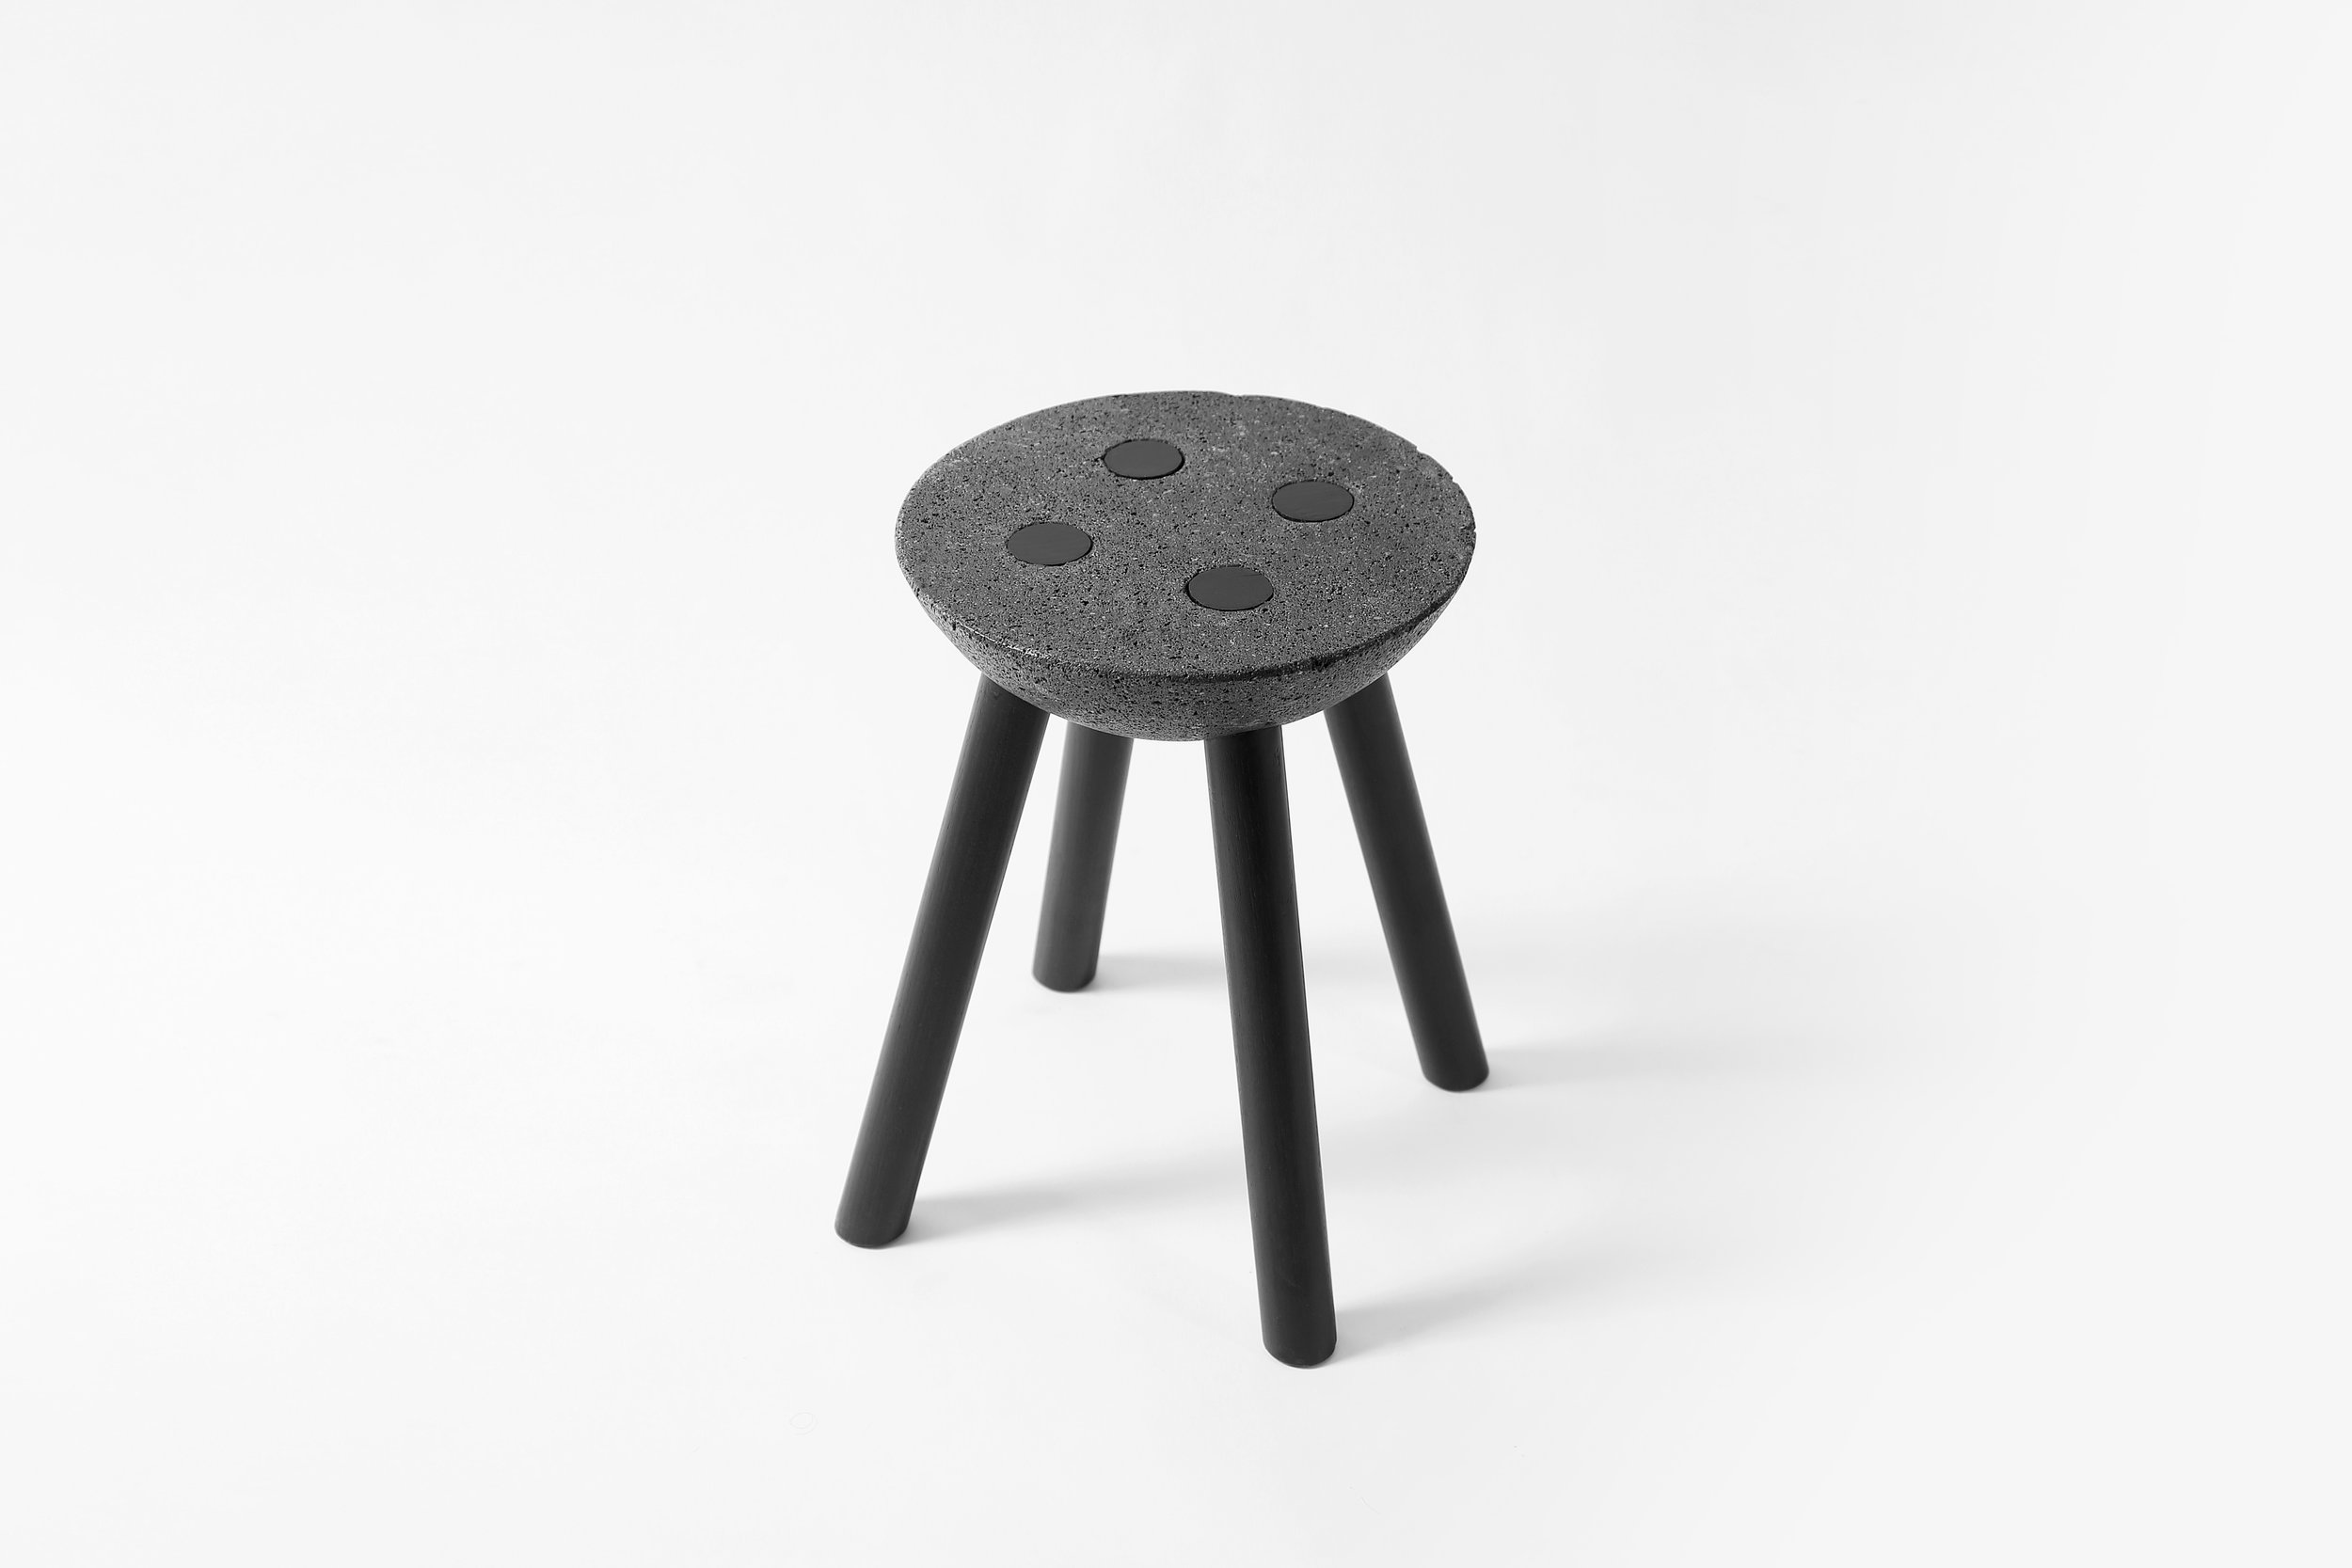 BASALTIC stool with black legs